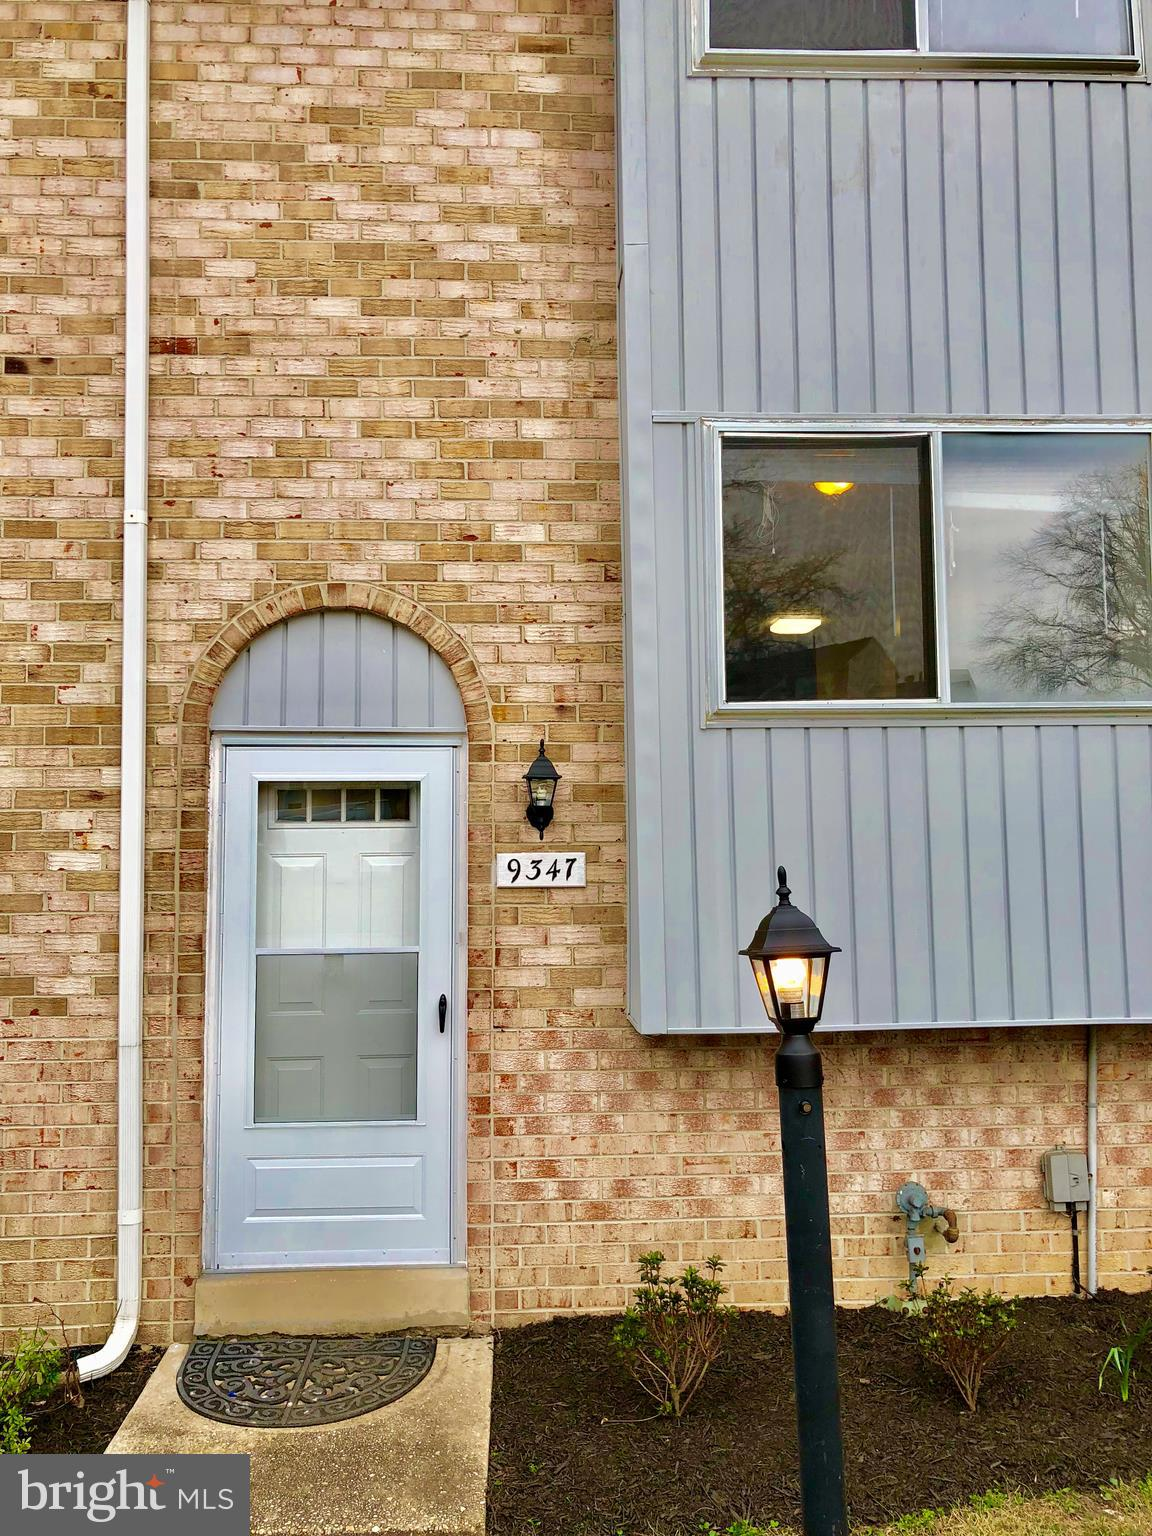 REDUCED 15k - 3 Bedroom 3 Level townhome in desirable Howard County location. Close to Route 29 and